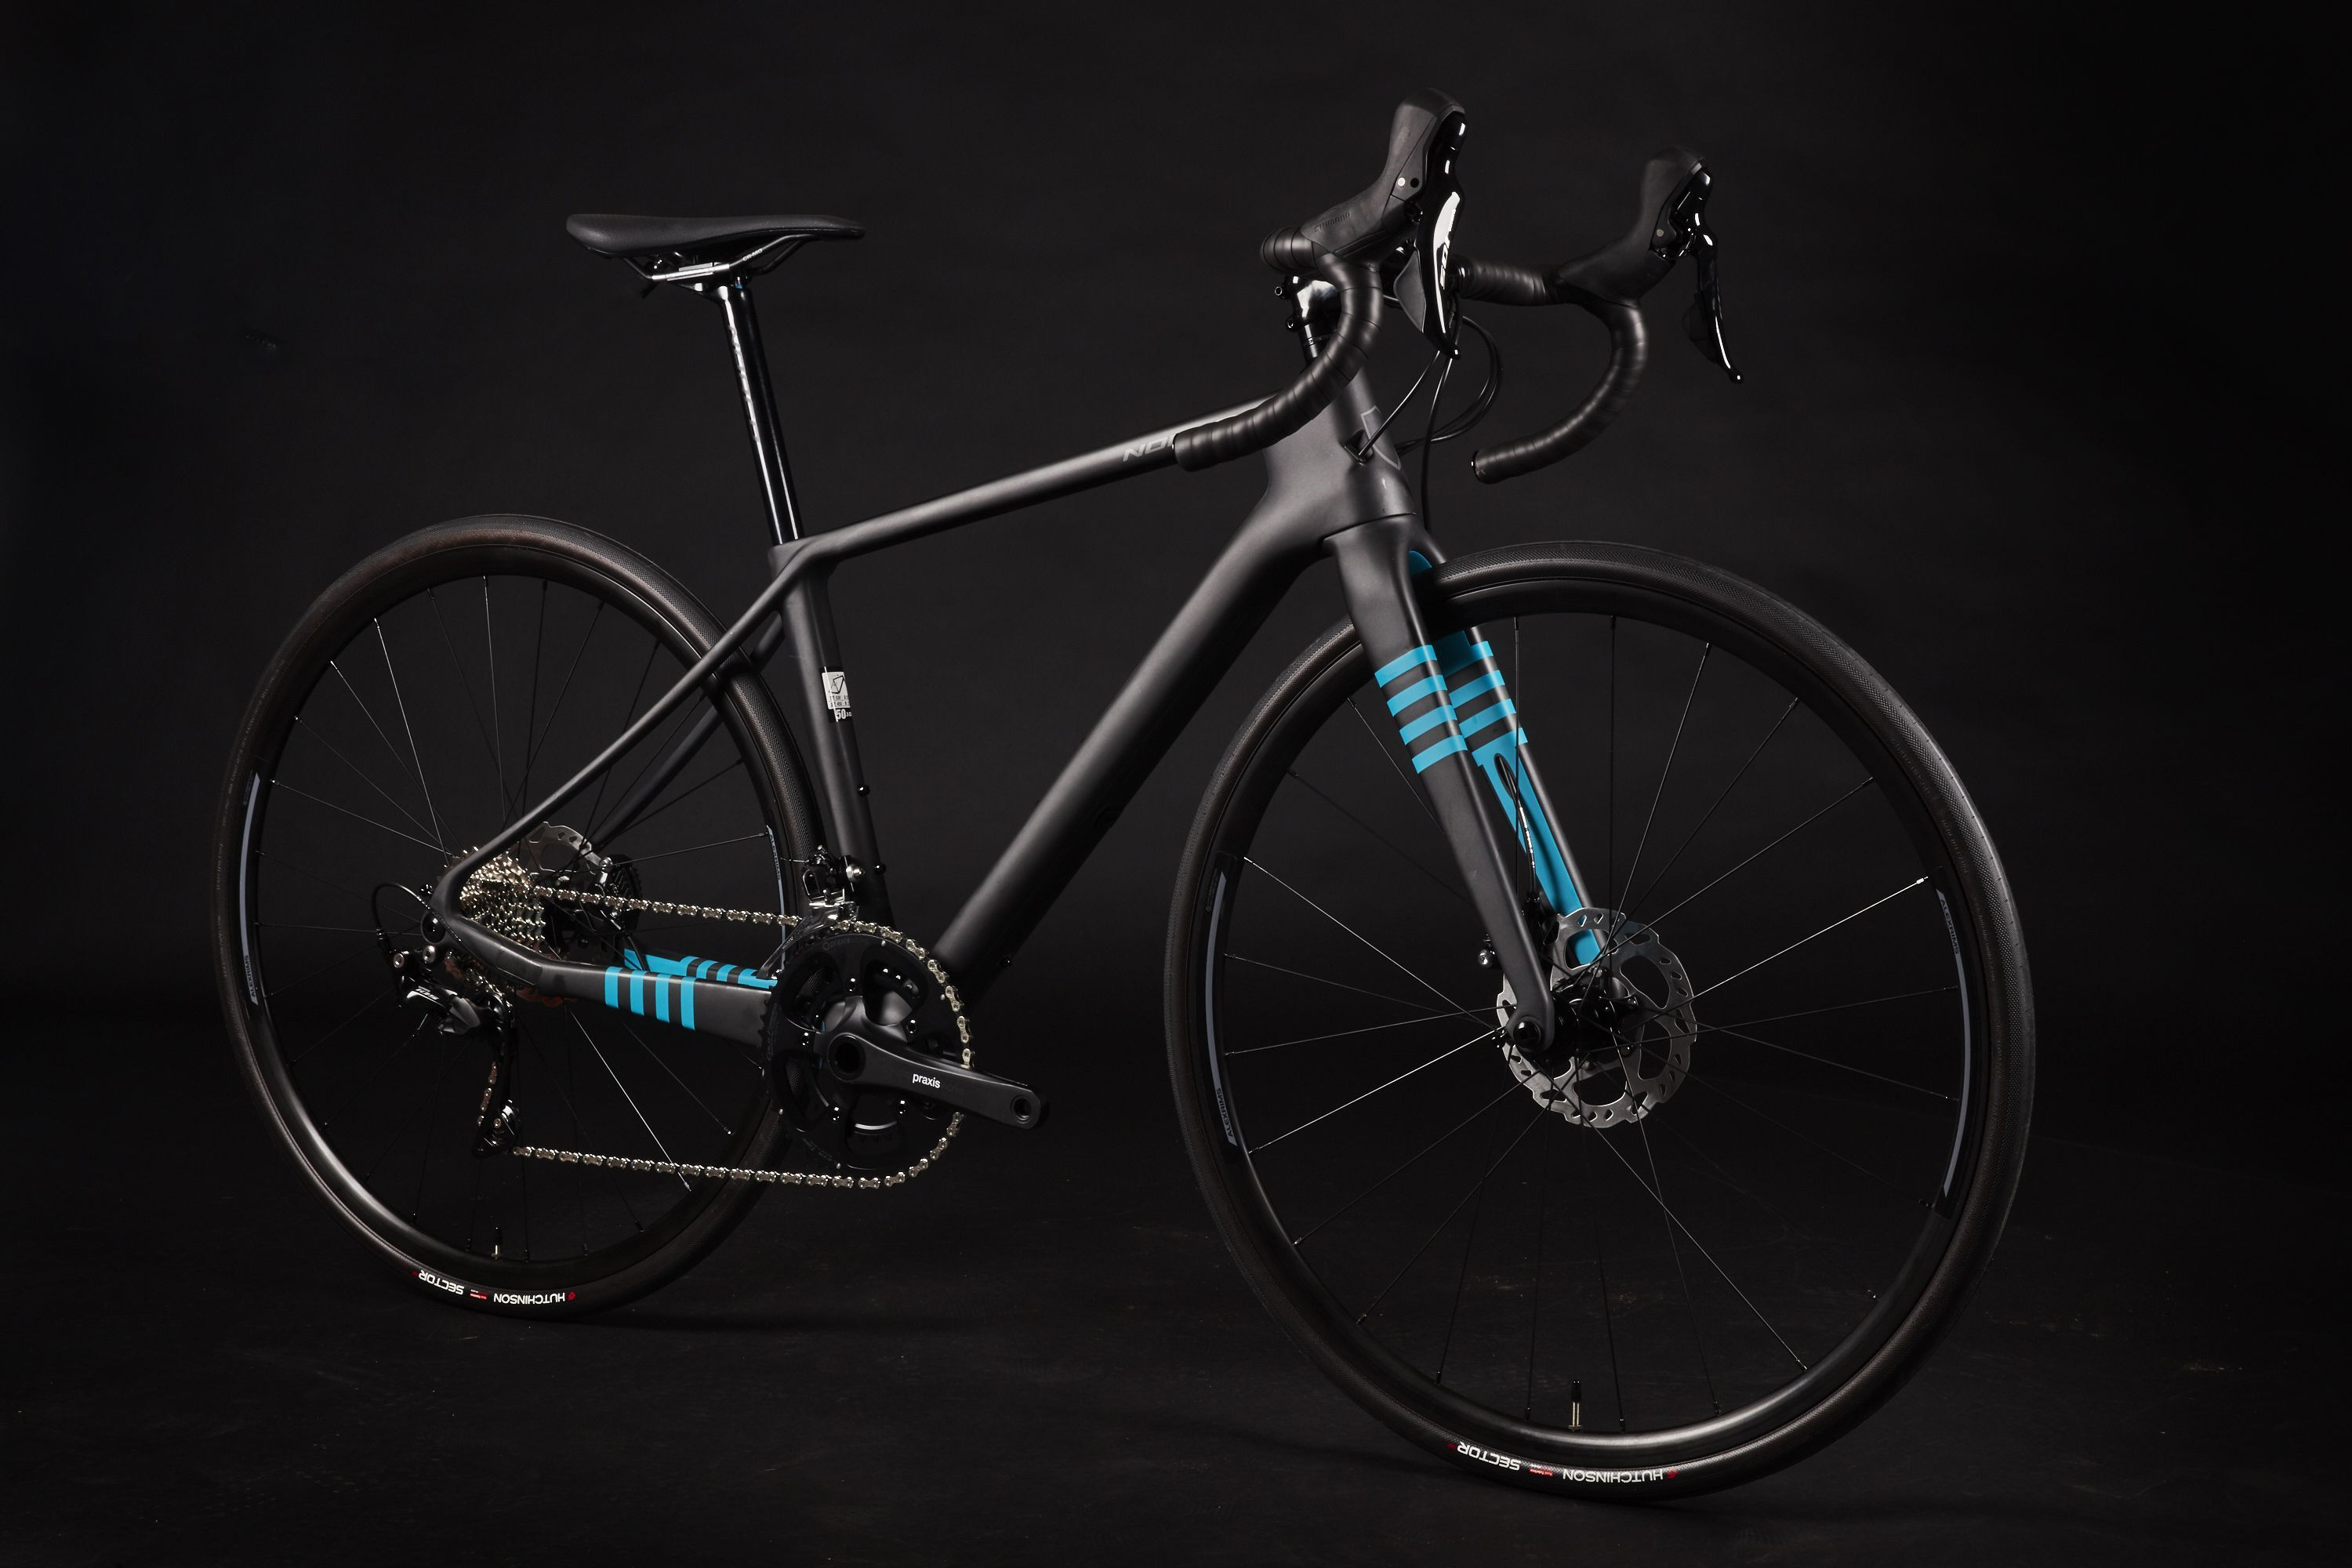 Norco's Section Carbon Women's Bike Is Ready for an Adventure